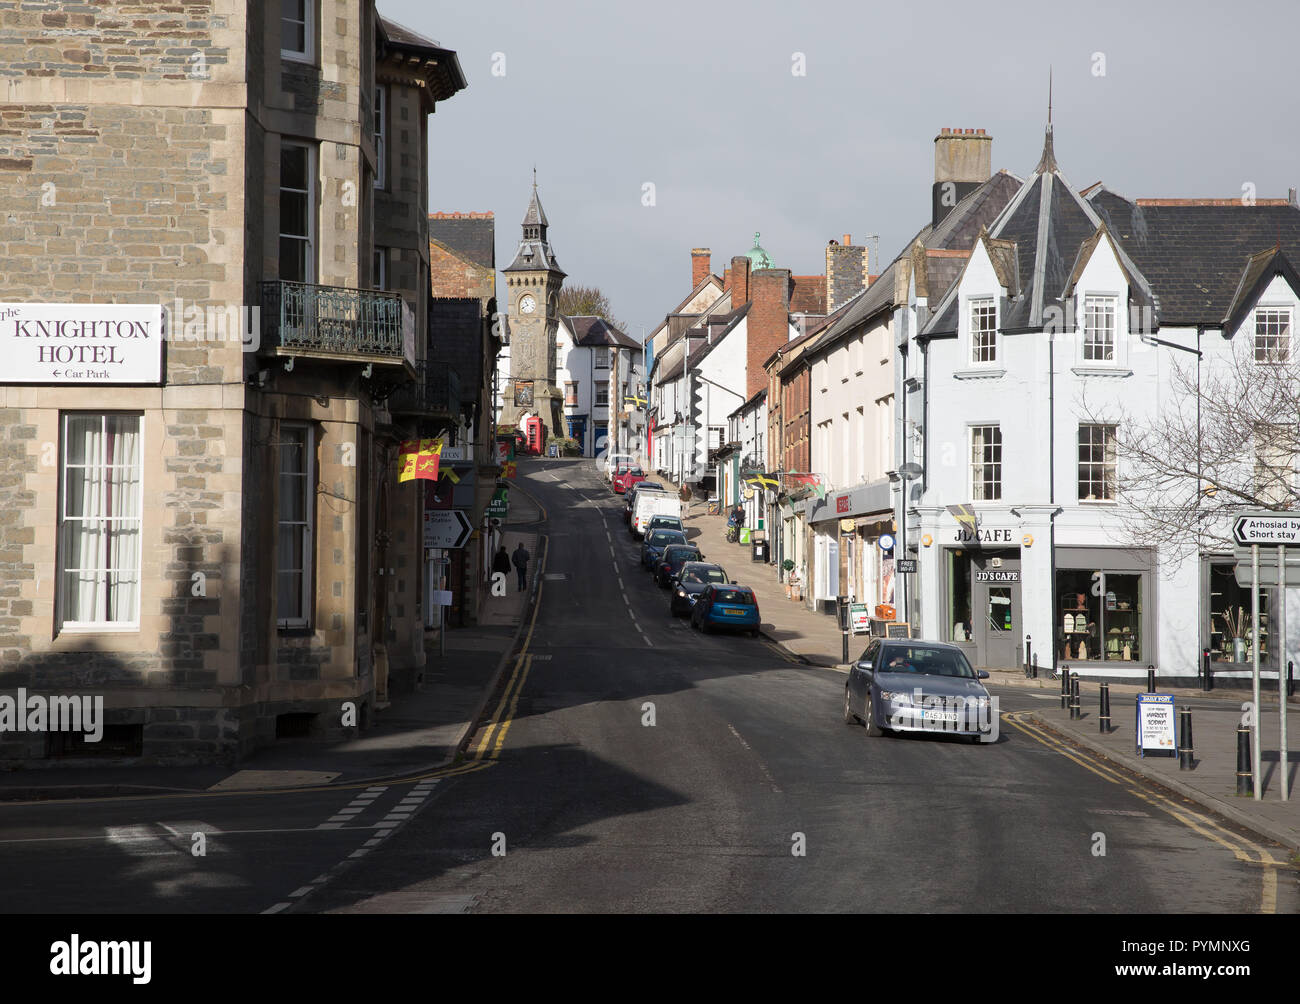 A view up the High Street in Knighton, Wales - Stock Image